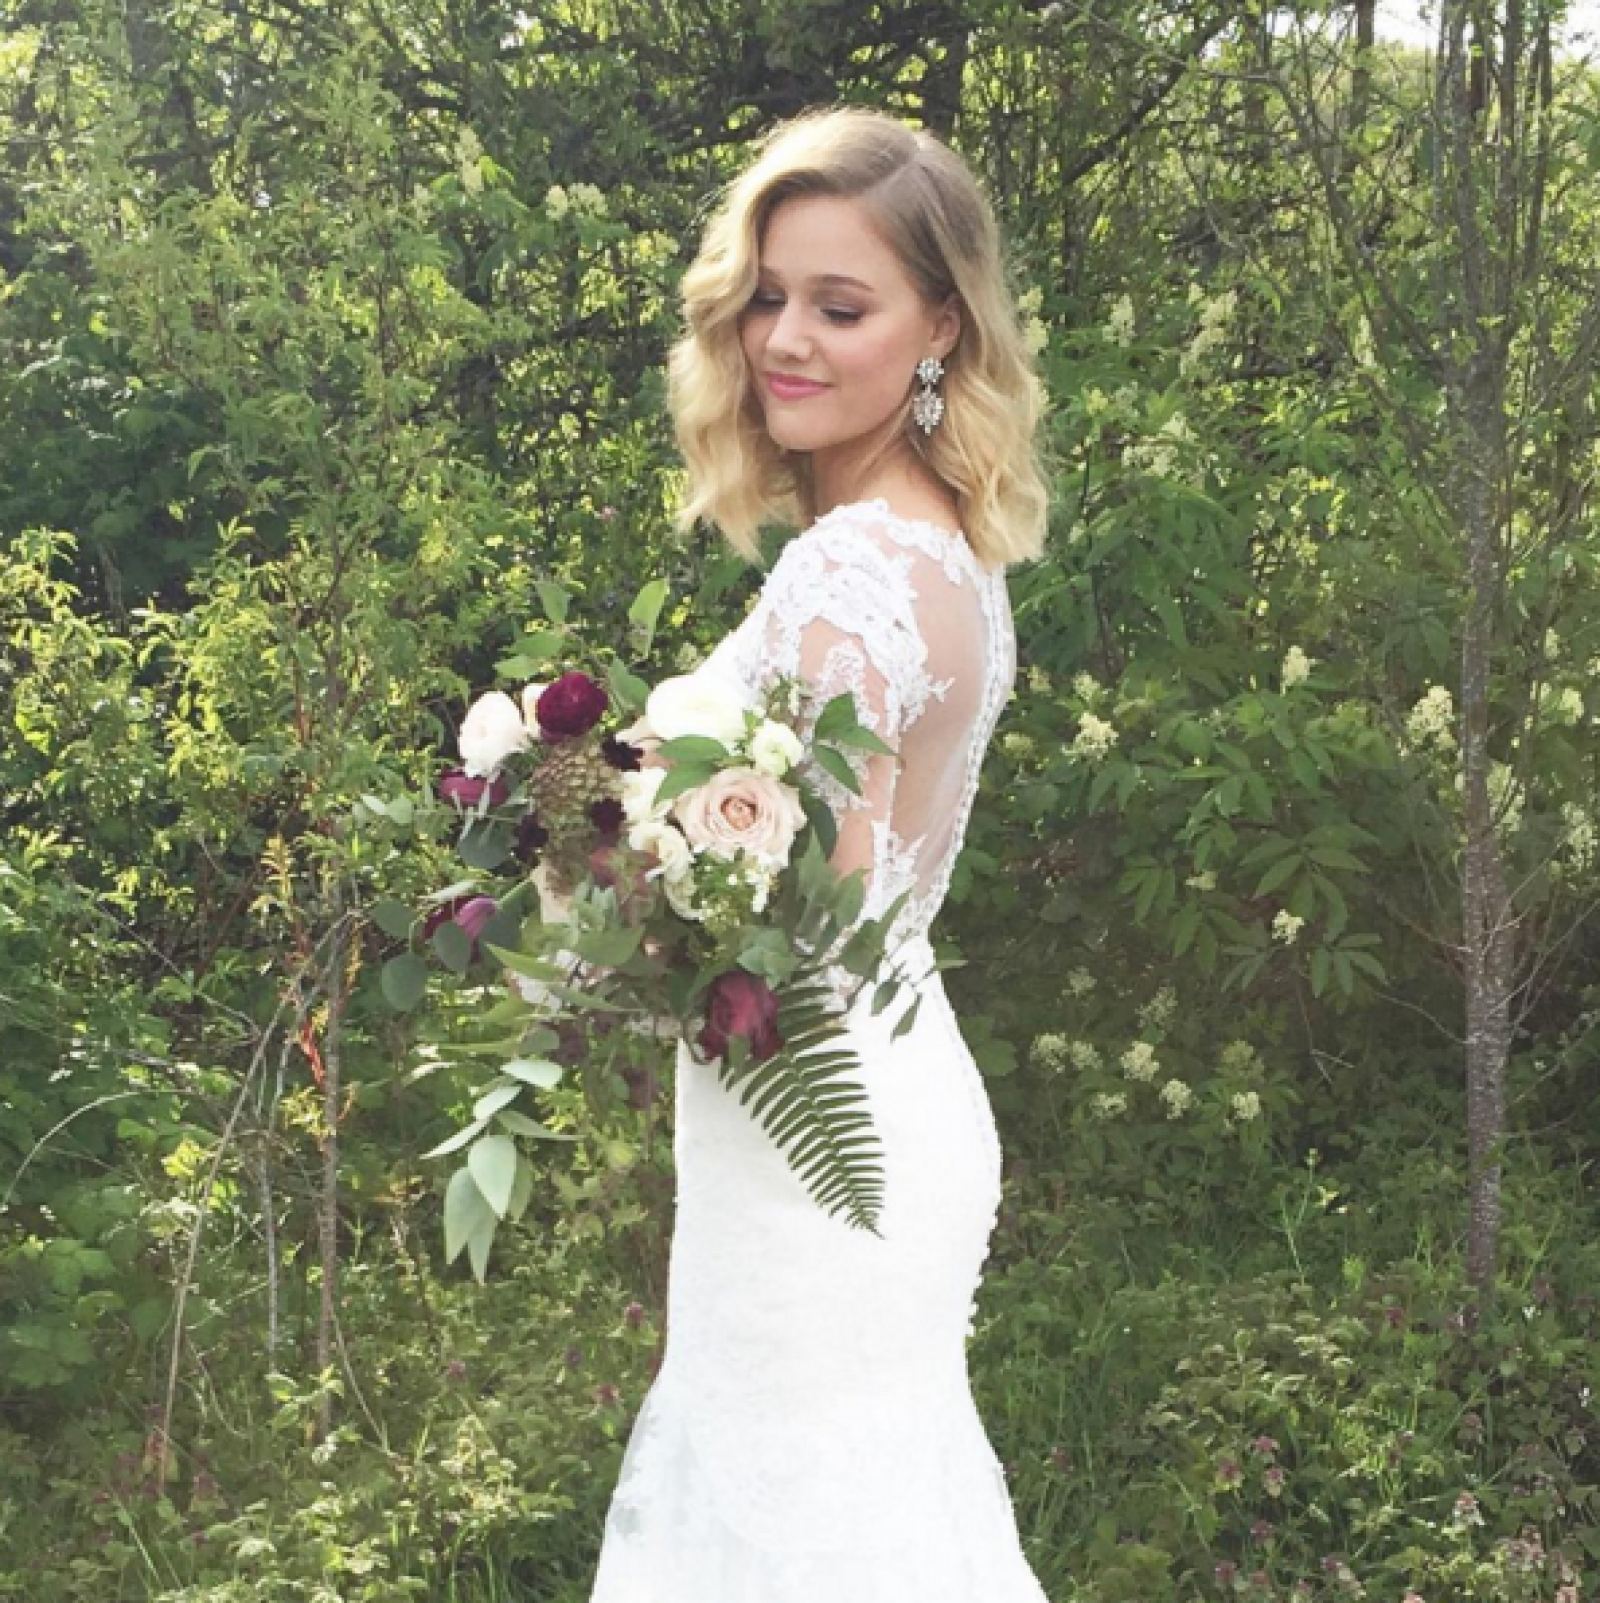 Wedding Hairstyle Lob: Our Favorite Instagram Posts 4.15.16